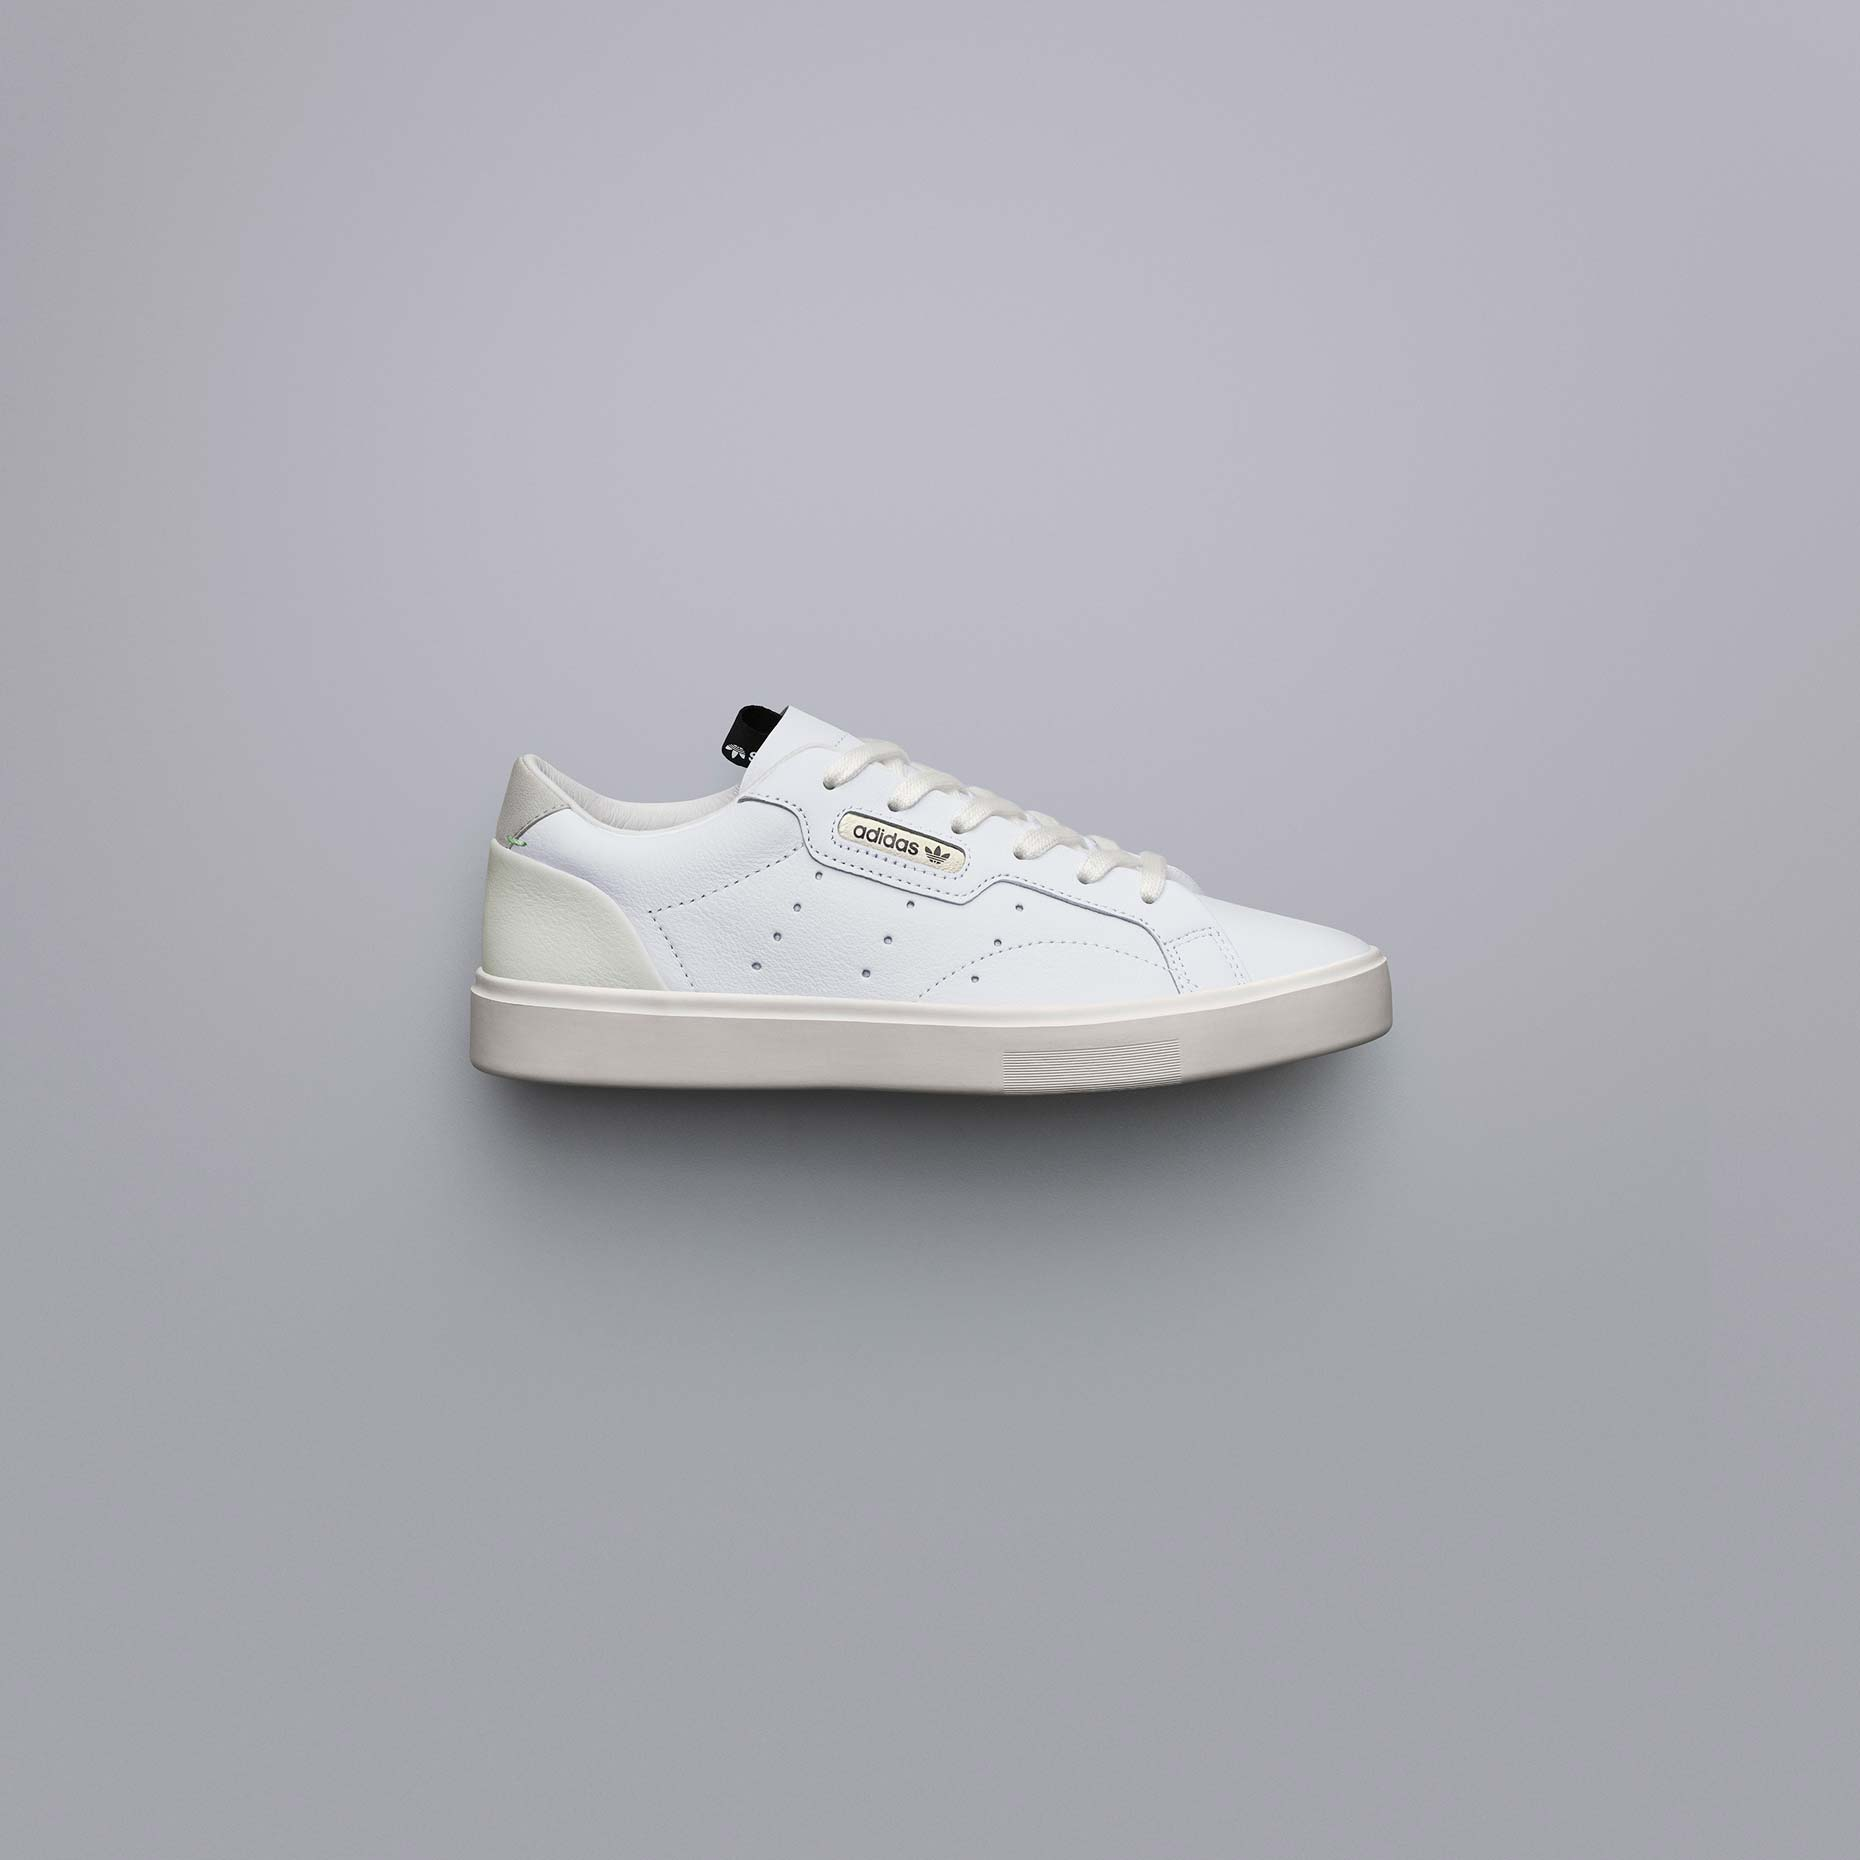 adidasOriginals_SS19_Sleek_SleekW_CG6199_01_Angle_COMP_c